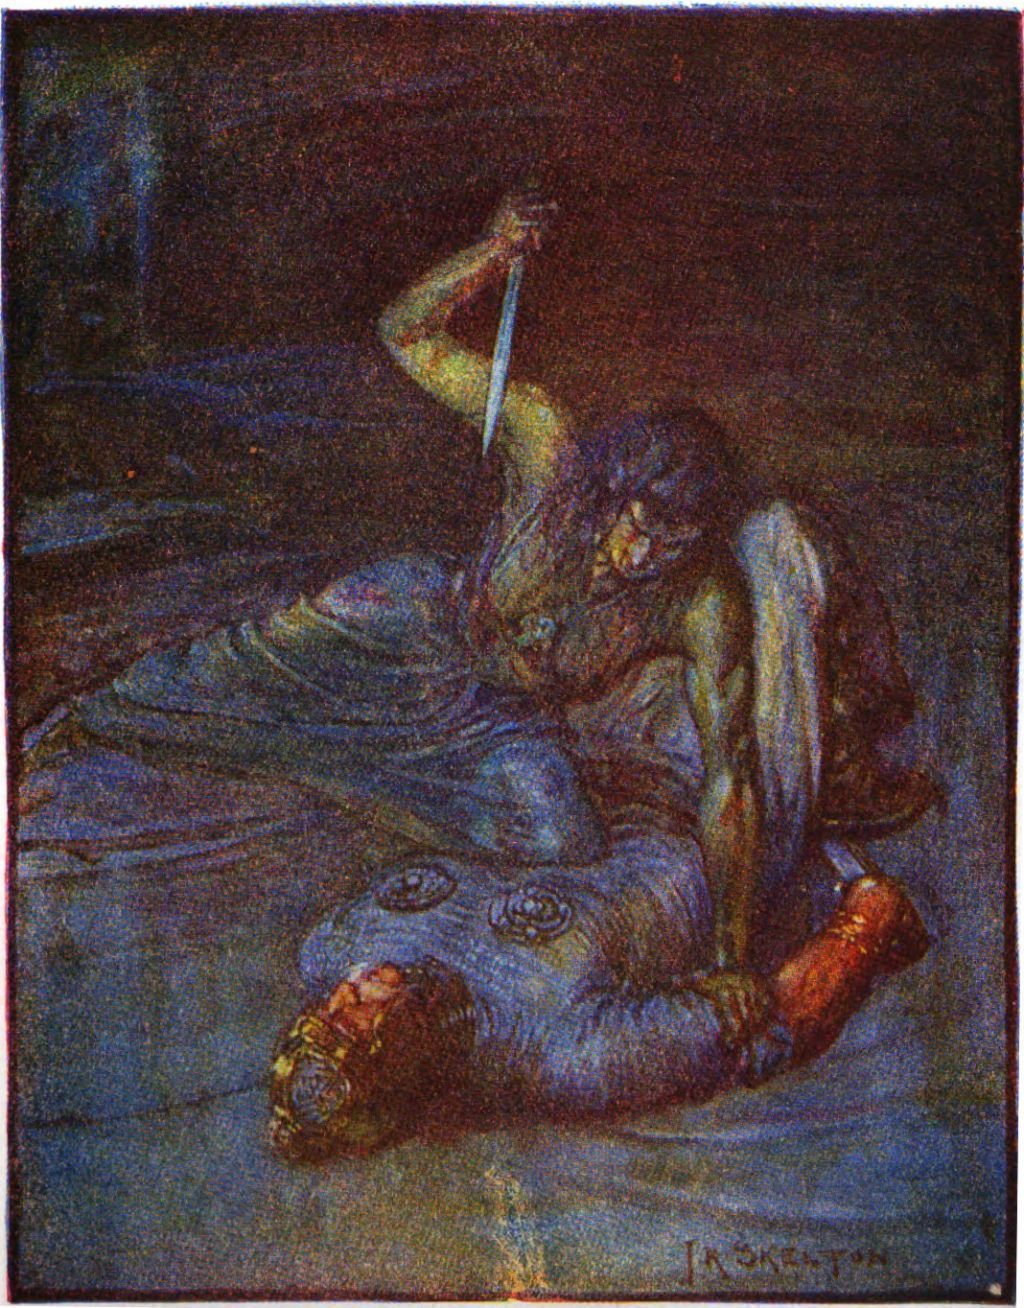 beowulf writework an illustration of grendel s mother by j r skelton from stories of beowulf 1908 described